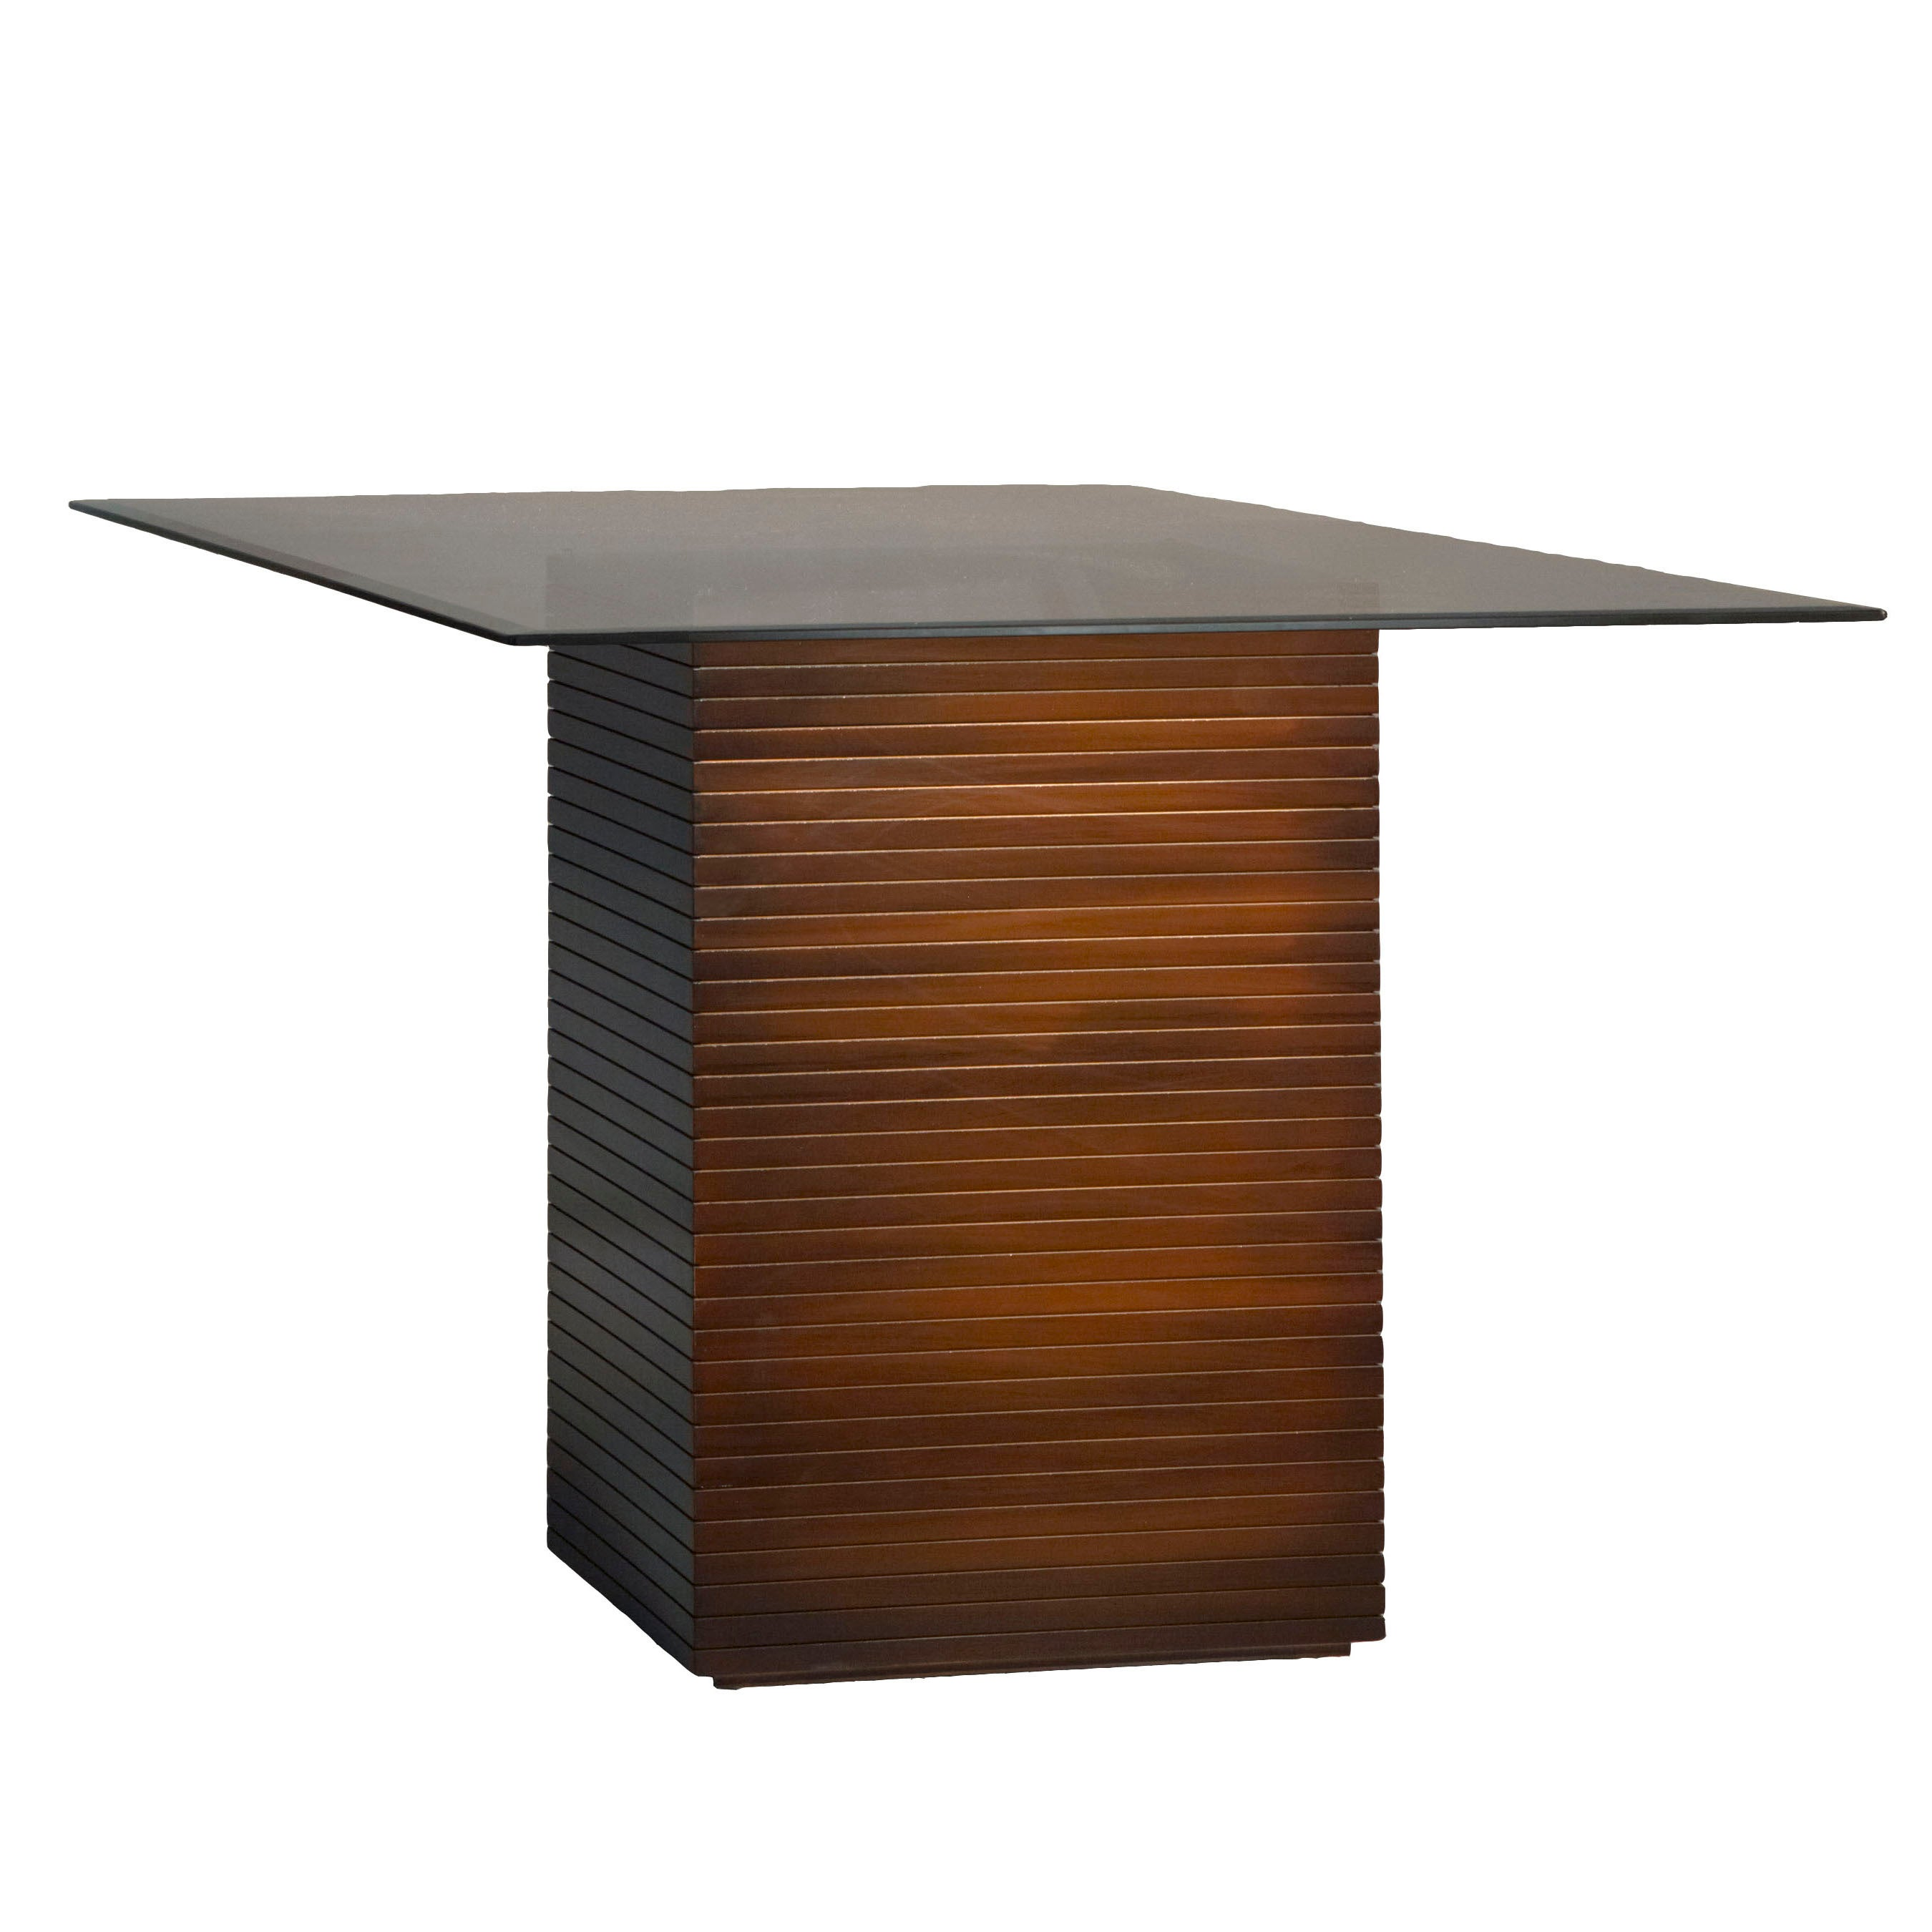 NOVA Divide Dining Table